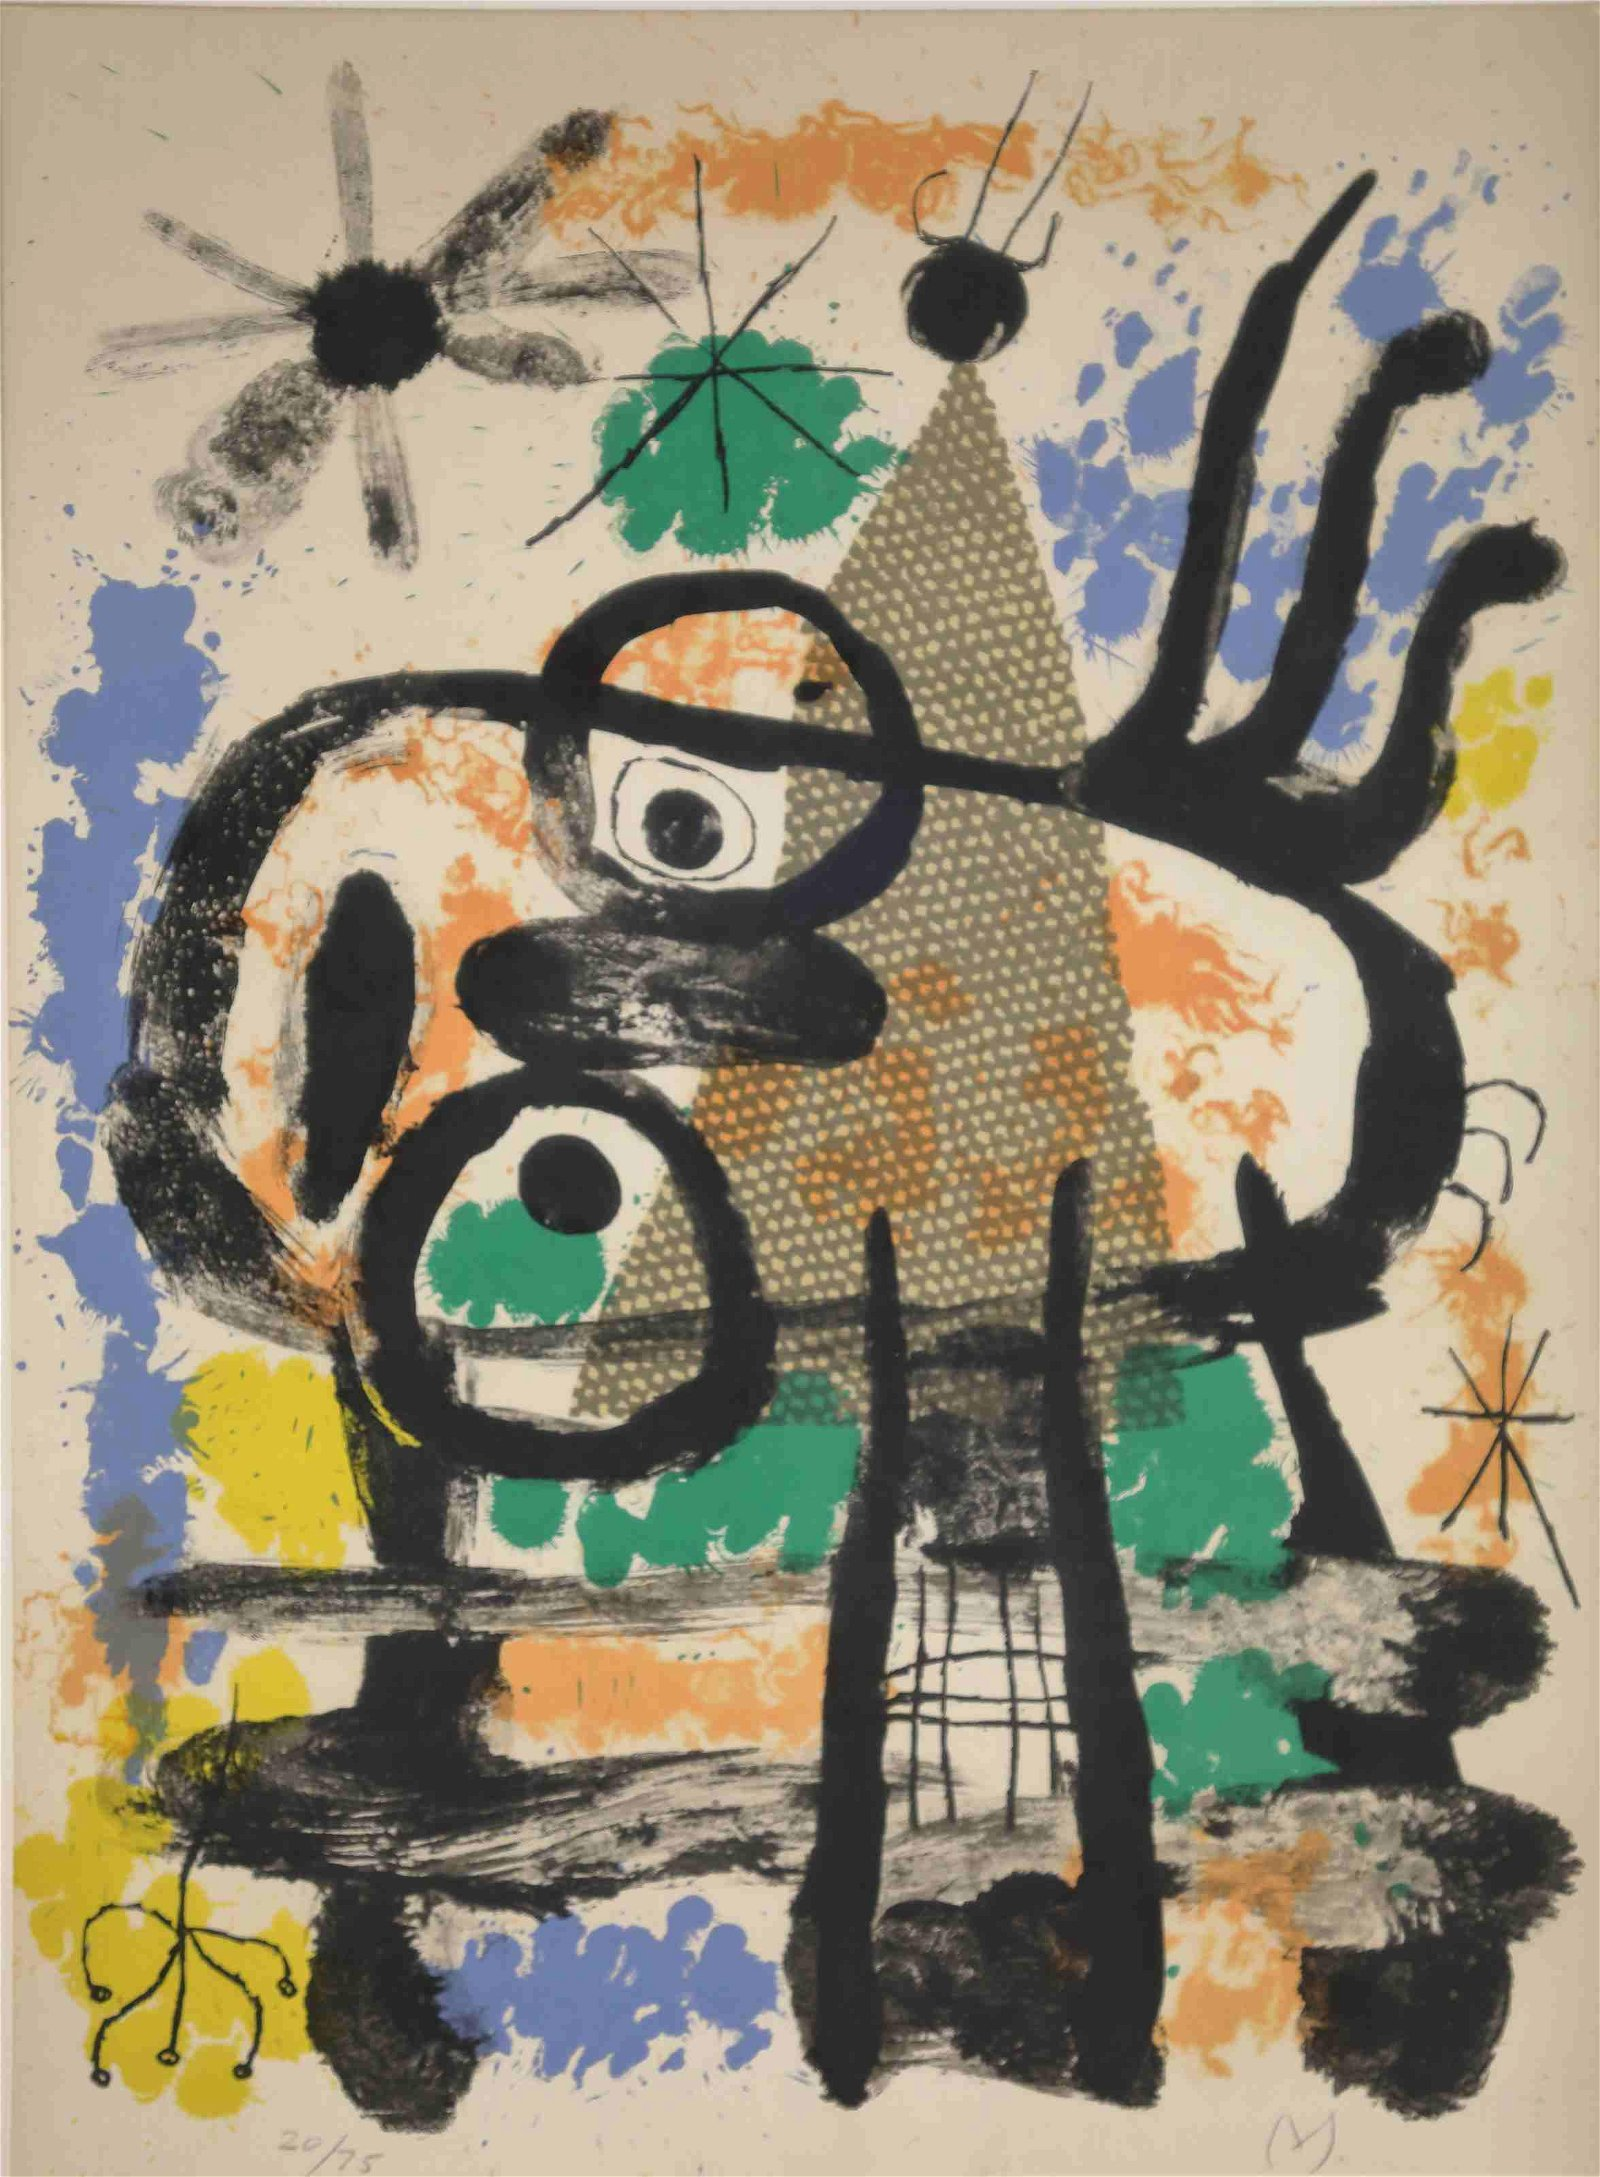 Joan Miro Colored Litho on Arches Paper # 20 / 75